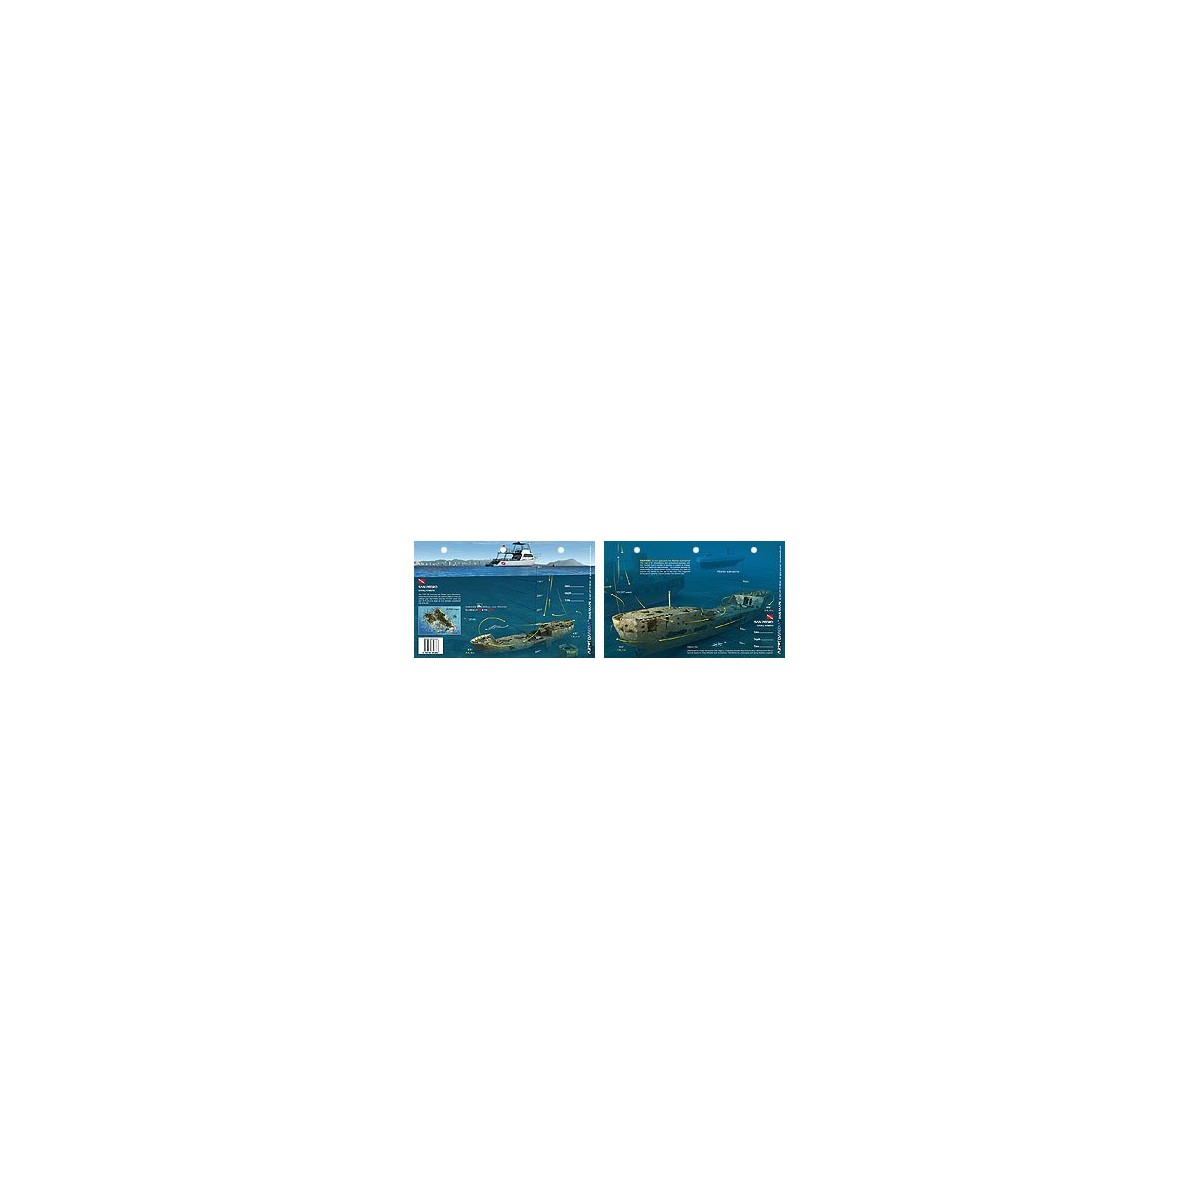 San Pedro in Oahu, Hawaii (8.5 x 5.5 Inches) (21.6 x 15cm) - New Art to Media Underwater Waterproof 3D Dive Site Map